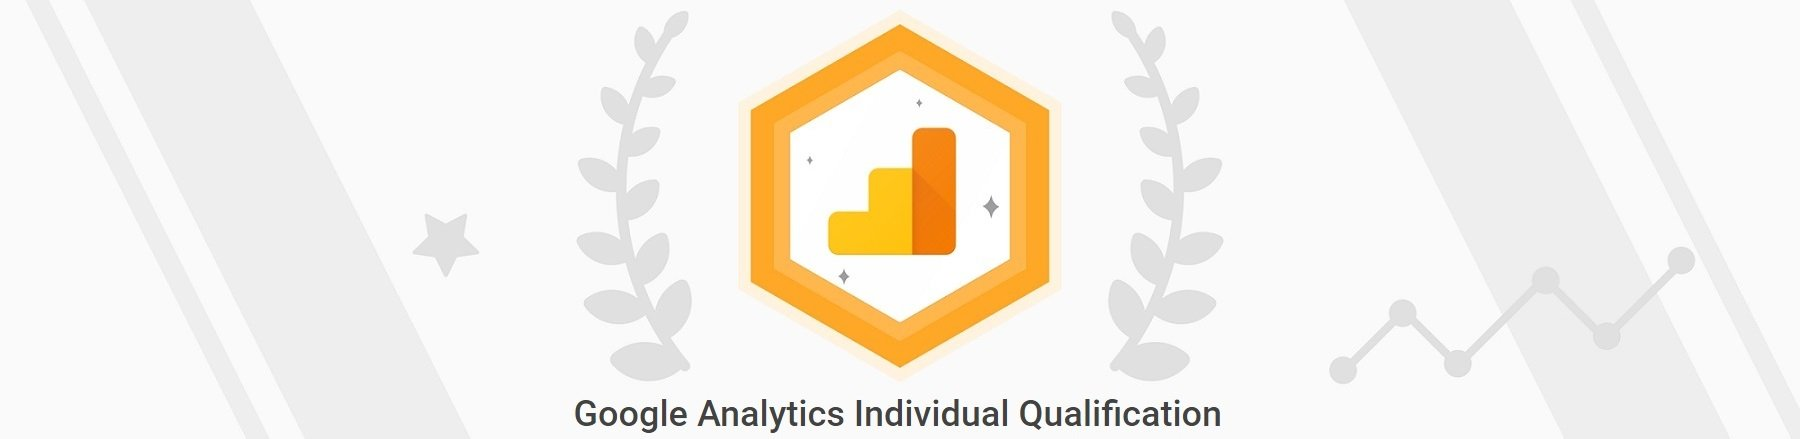 google analytics iq certification